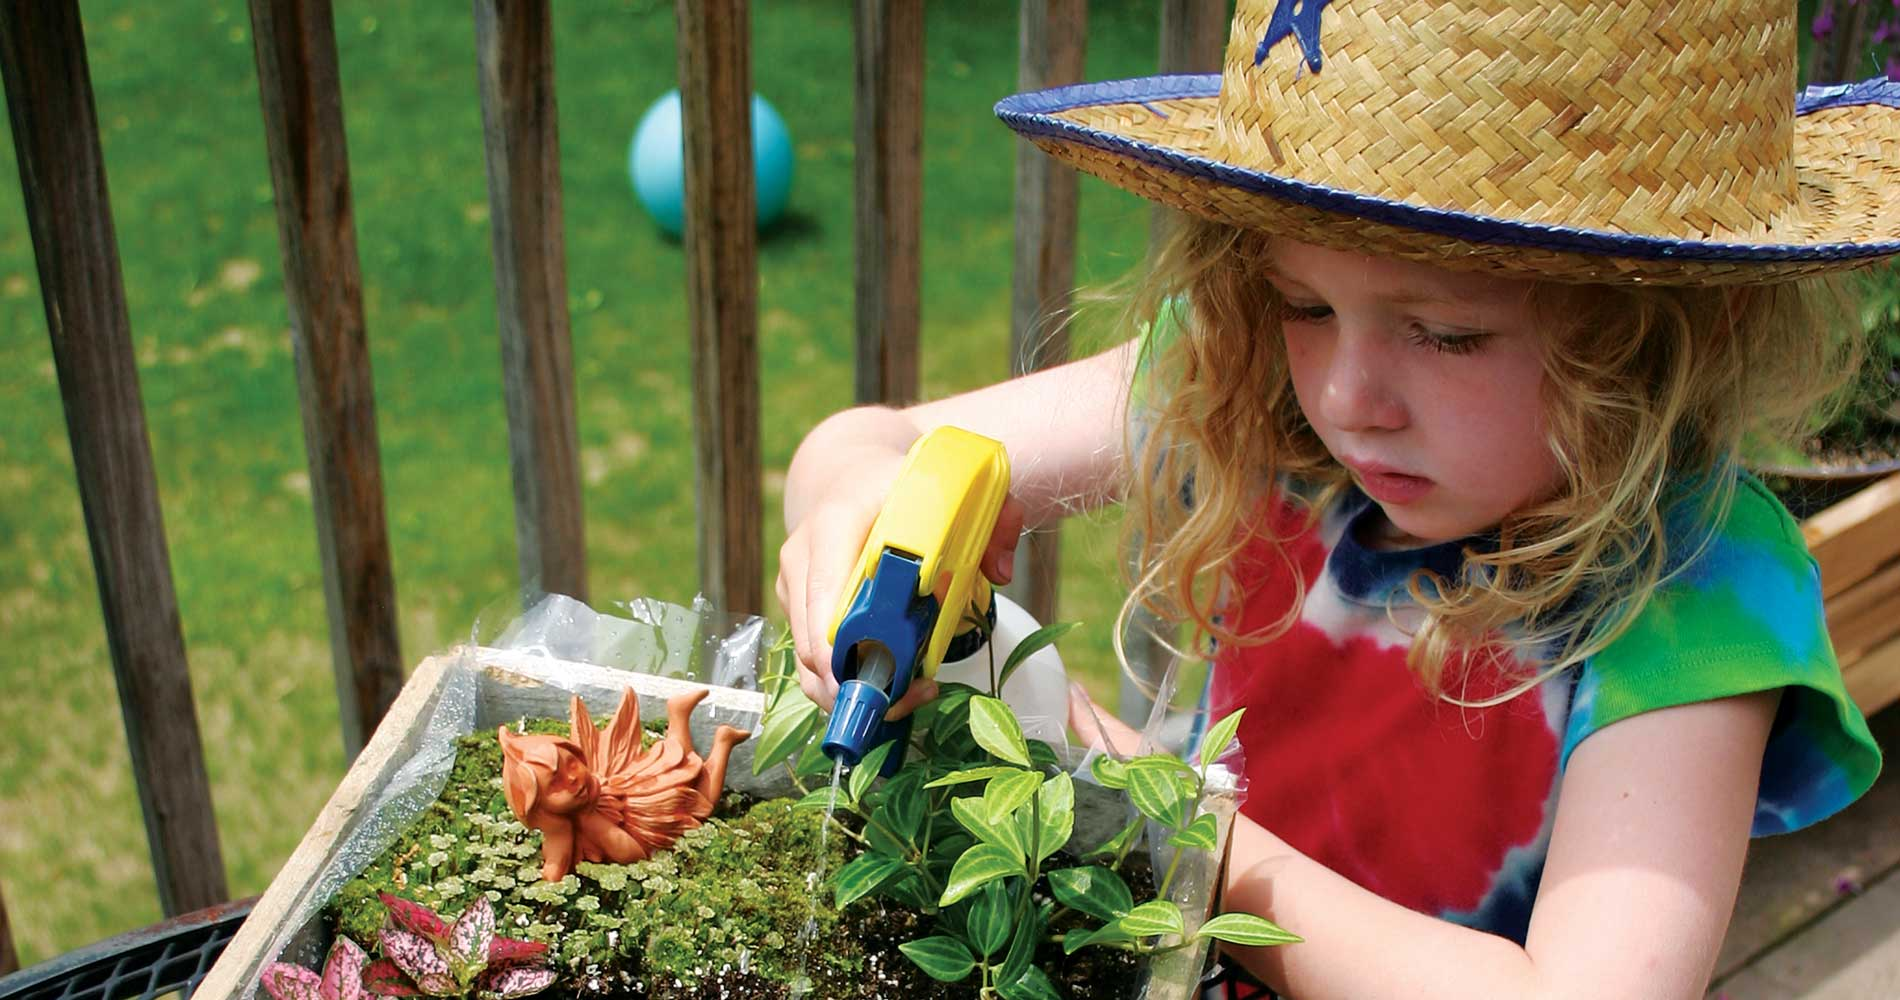 young blonde girl with a straw hat watering a small garden with a squirt bottle